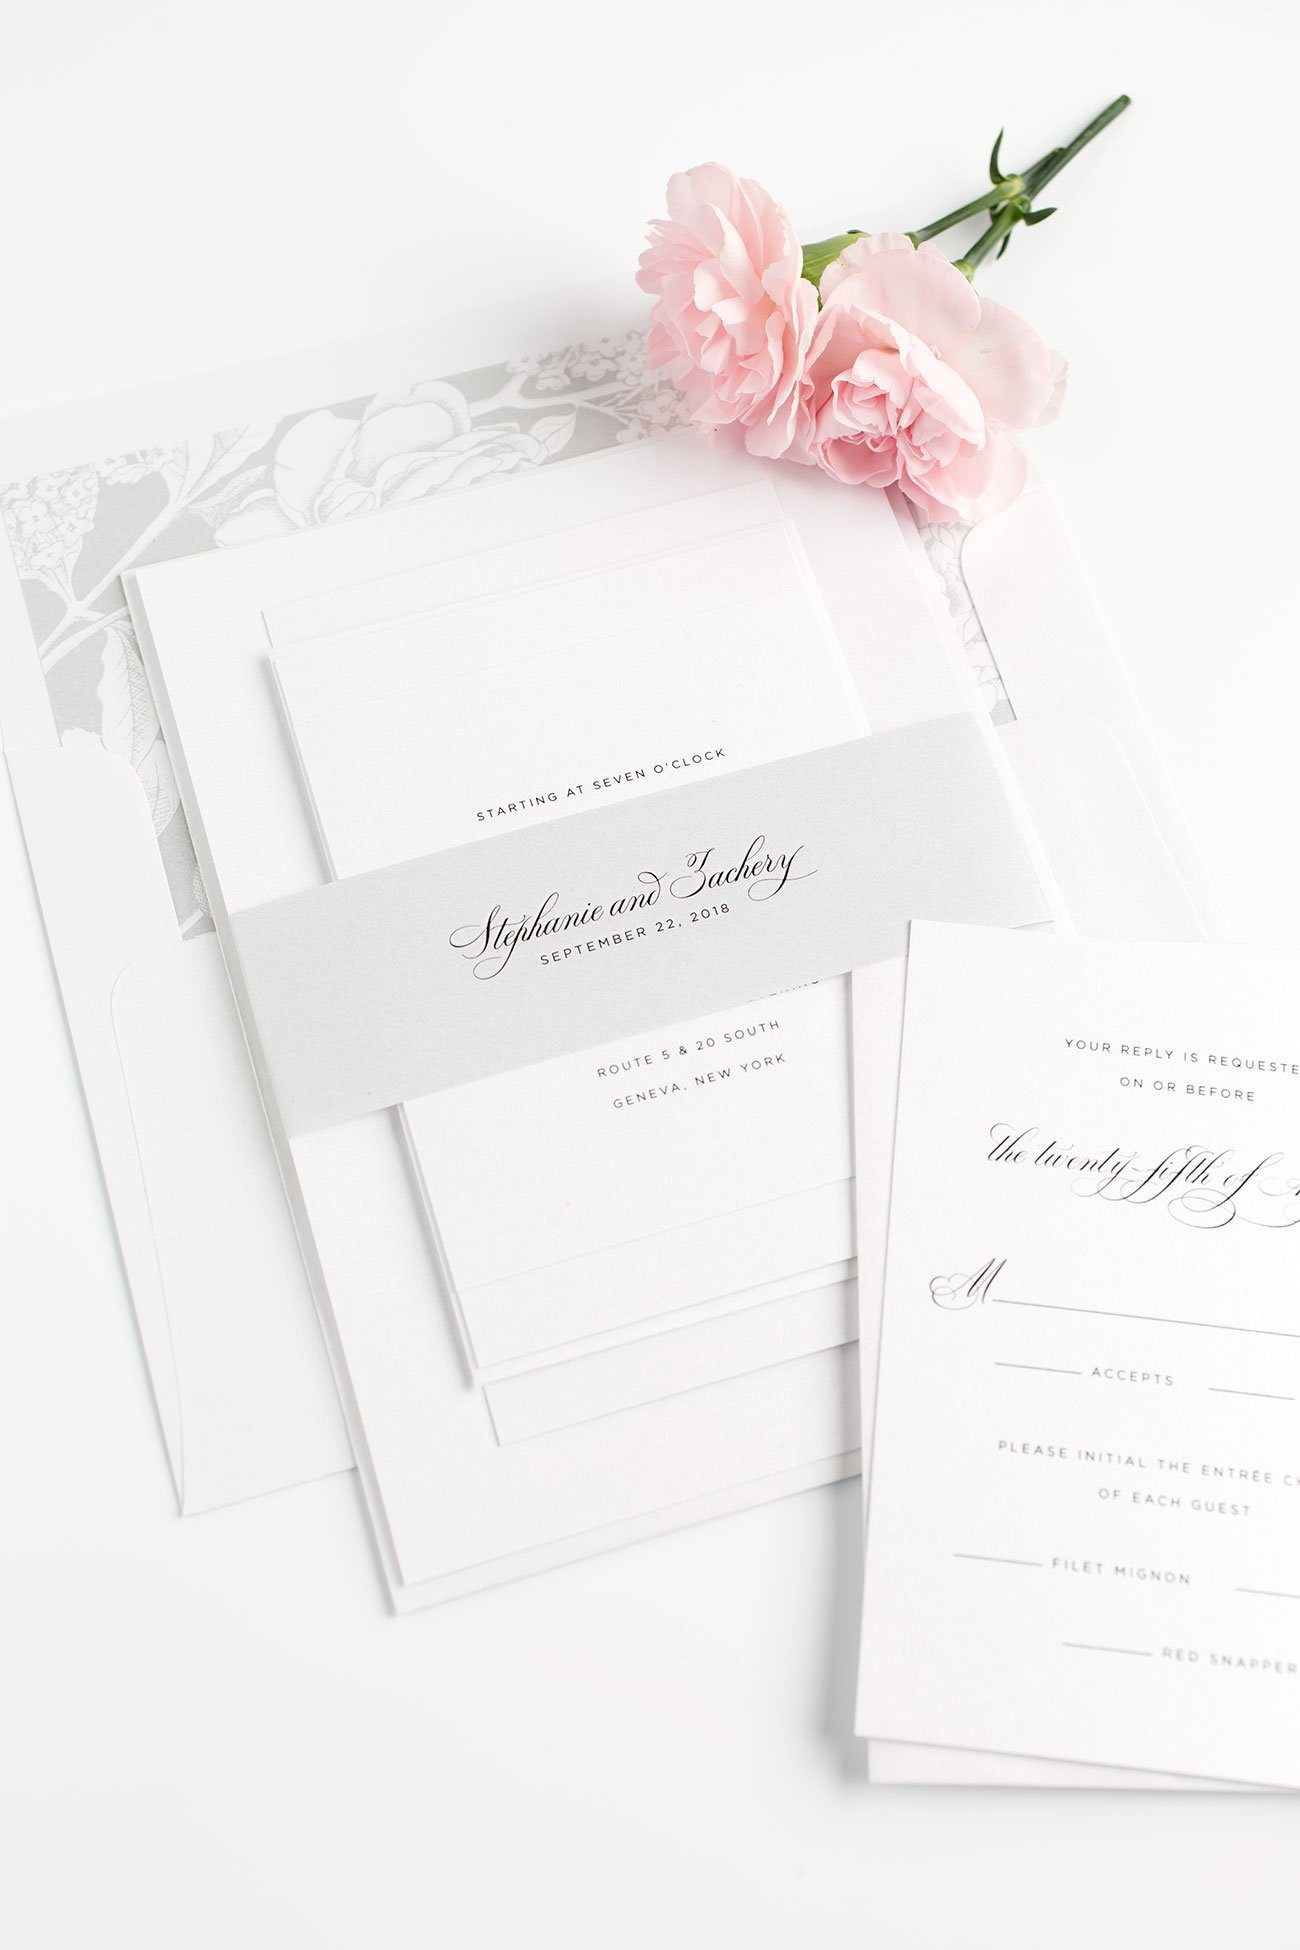 Silver Wedding Invitations with Floral Accents